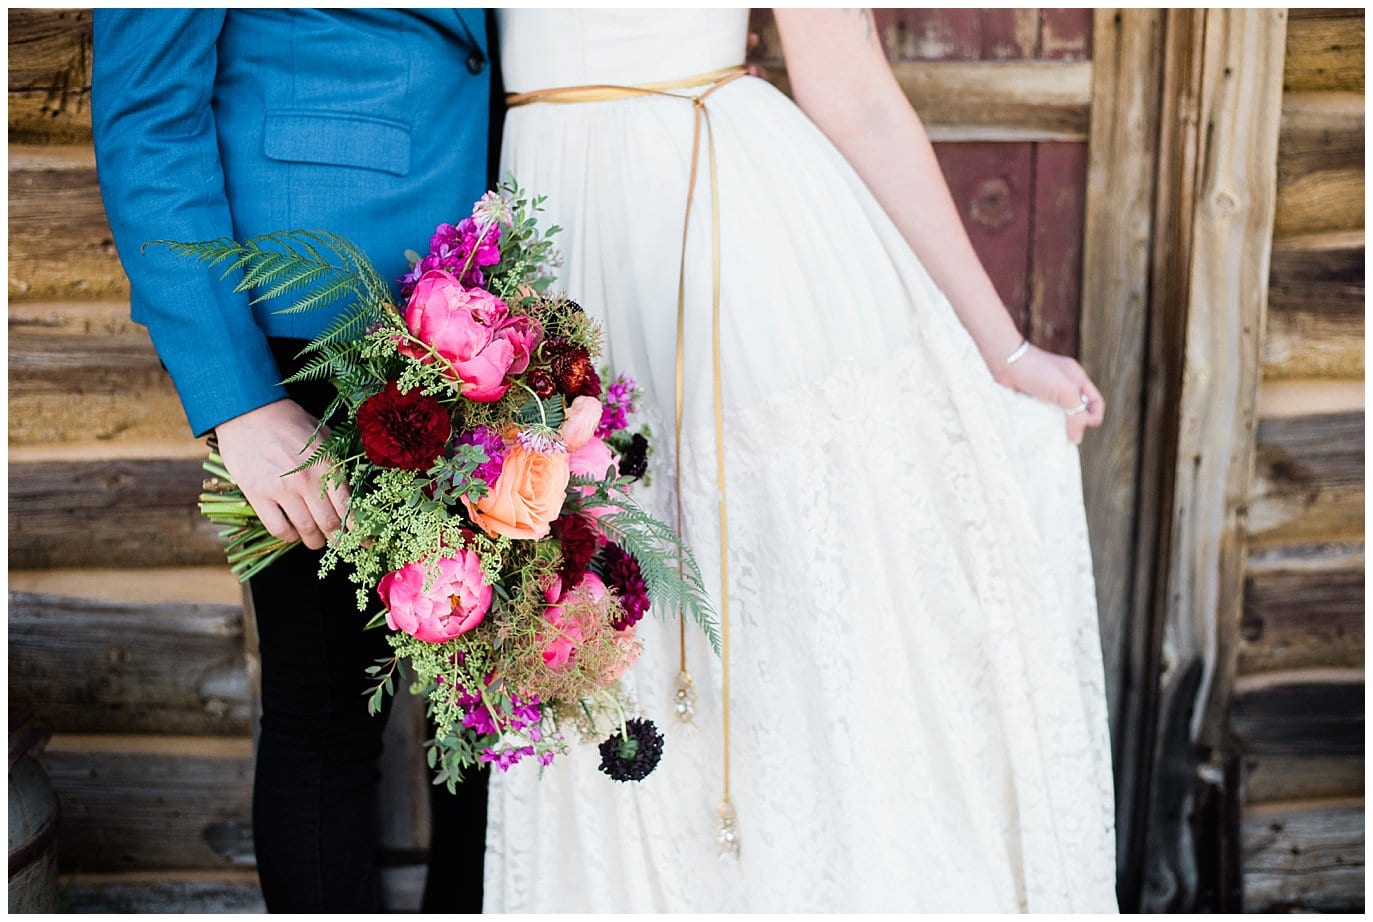 colorful wedding flowers with lace dress and blue suit photo